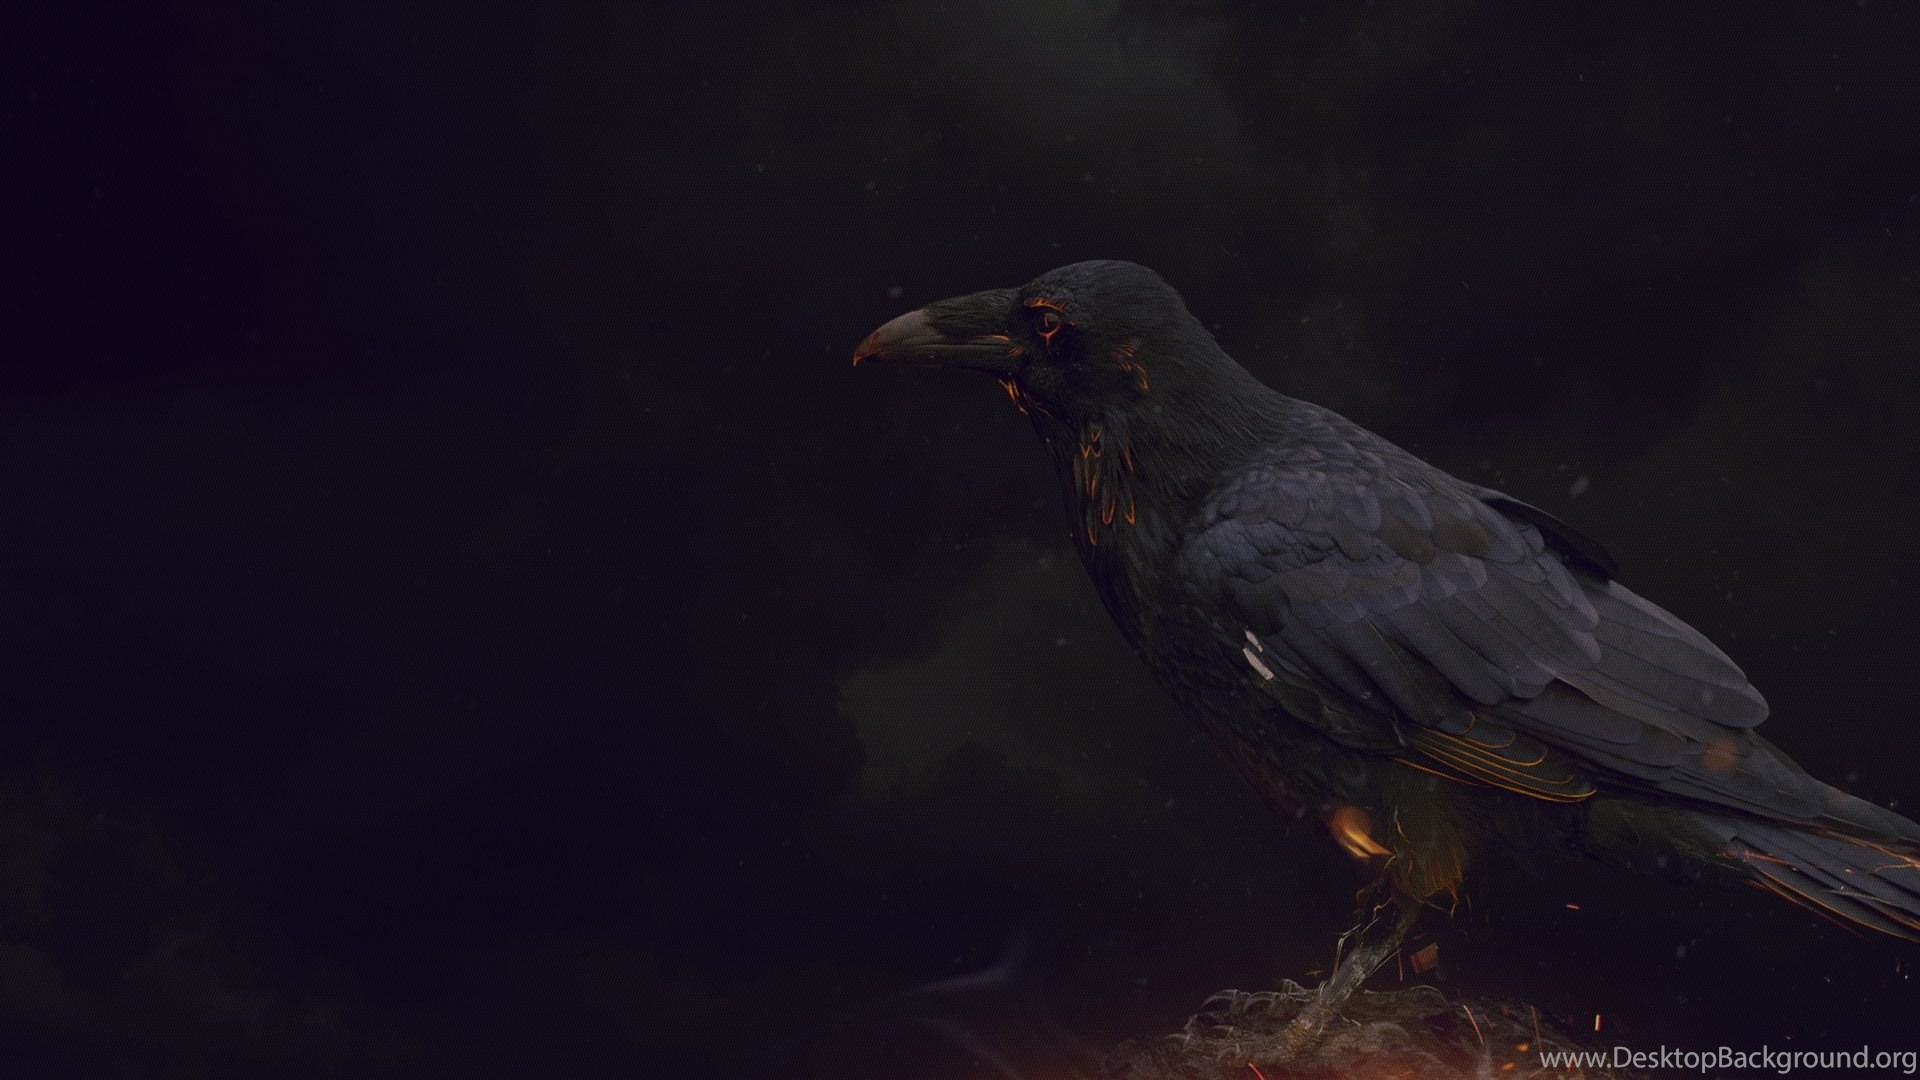 Crow Wallpapers 15 HD Wallpaper Pics The Best